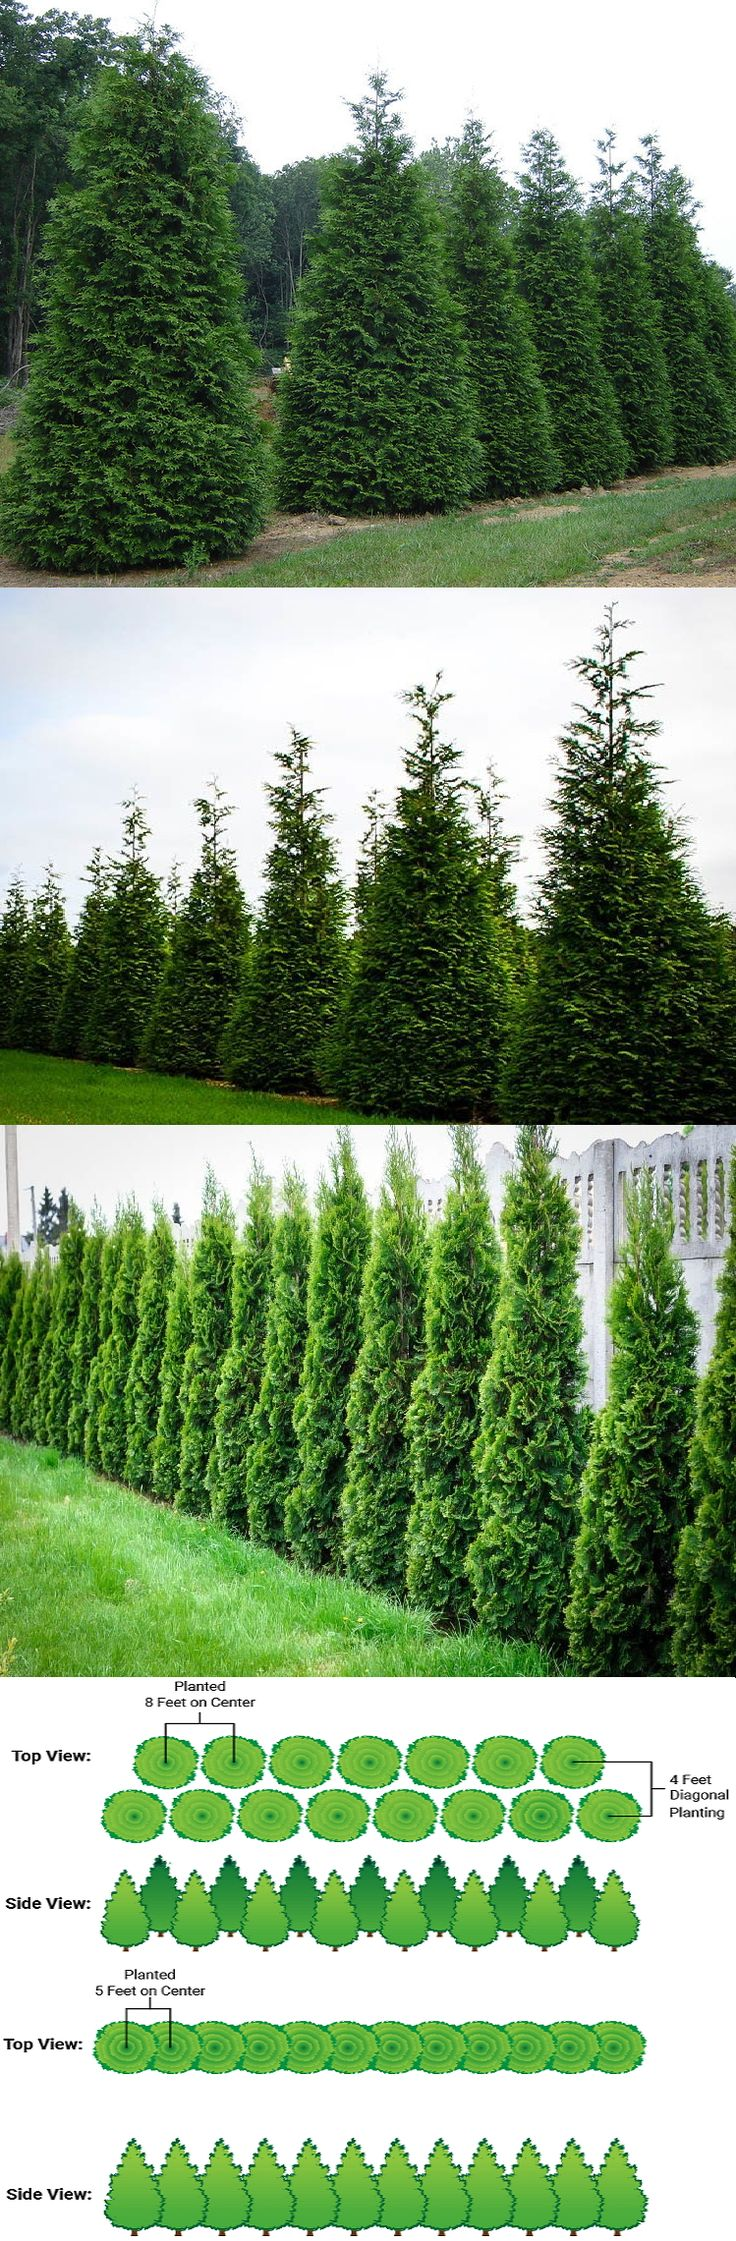 Thuja Green Giant Arborvitae (Thuja Standishii Plicata)-Zone 5-9 Part to Full Sun 20-40' Height 12-20' Width. Fast growing (3-5' yr) evergreen tree light green soft foliage.Plant 3-5' apart for short 8' hedge (trim 1x yr)-plant close together to grow taller & narrower. Or let it be a broad large screen in a uniform shape, blocking noise, wind, snow & creating absolute privacy. Drought tolerant, deer, disease & insect resistant in almost any soil. Hybrid of Japanese Thuja & Western Red Cedar.